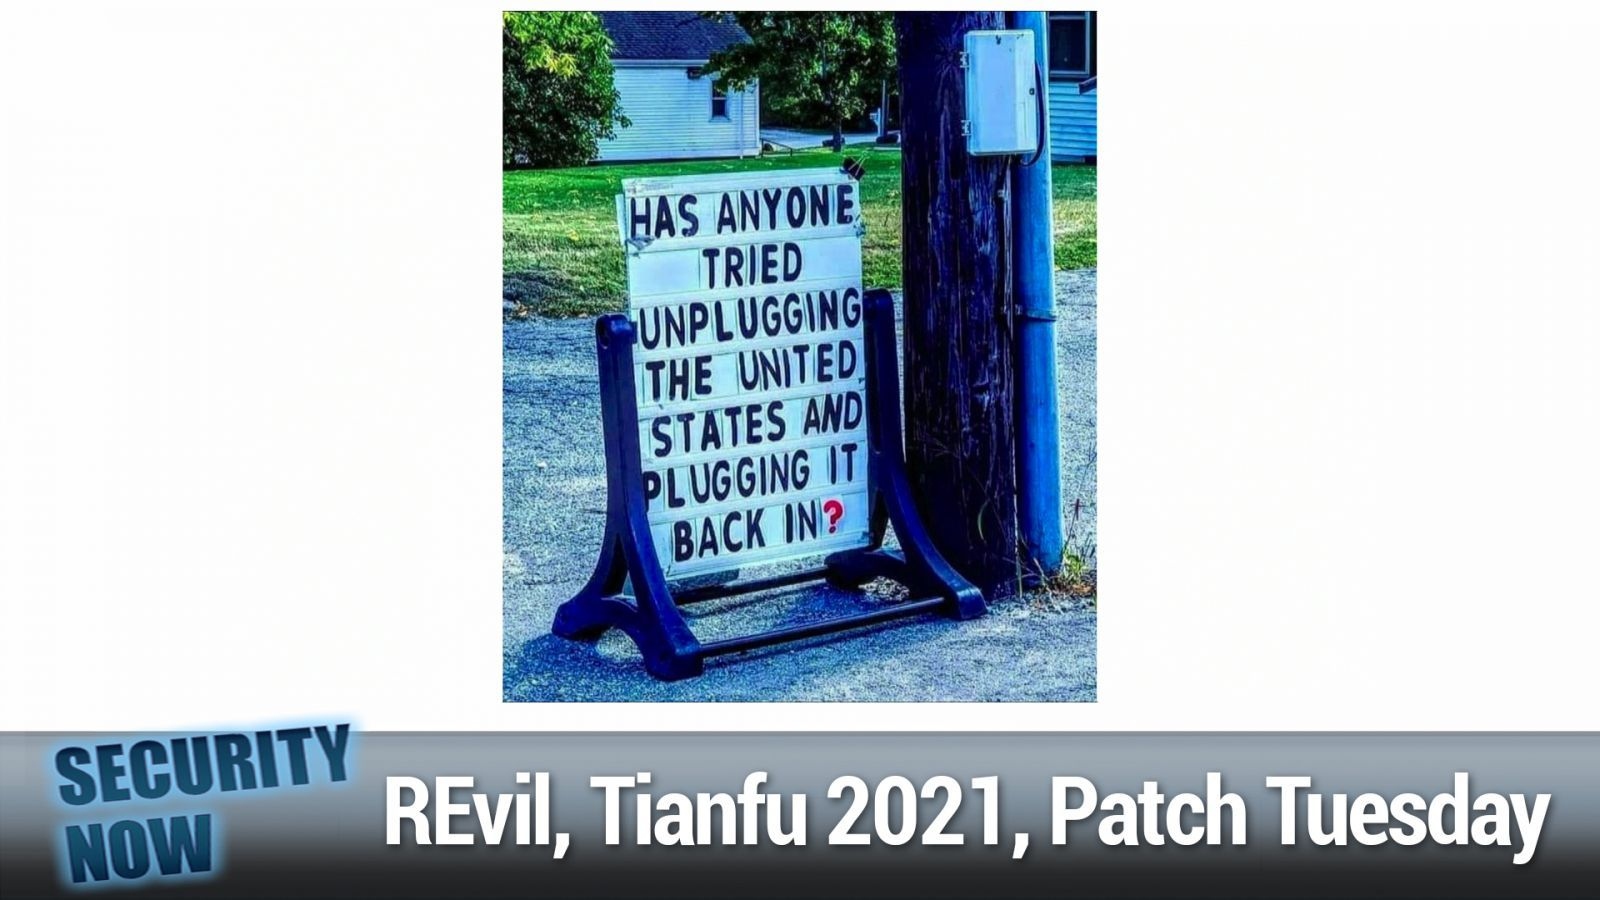 REvil Gone for Good? Tianfu Cup 2021, Patch Tuesday Aftermath